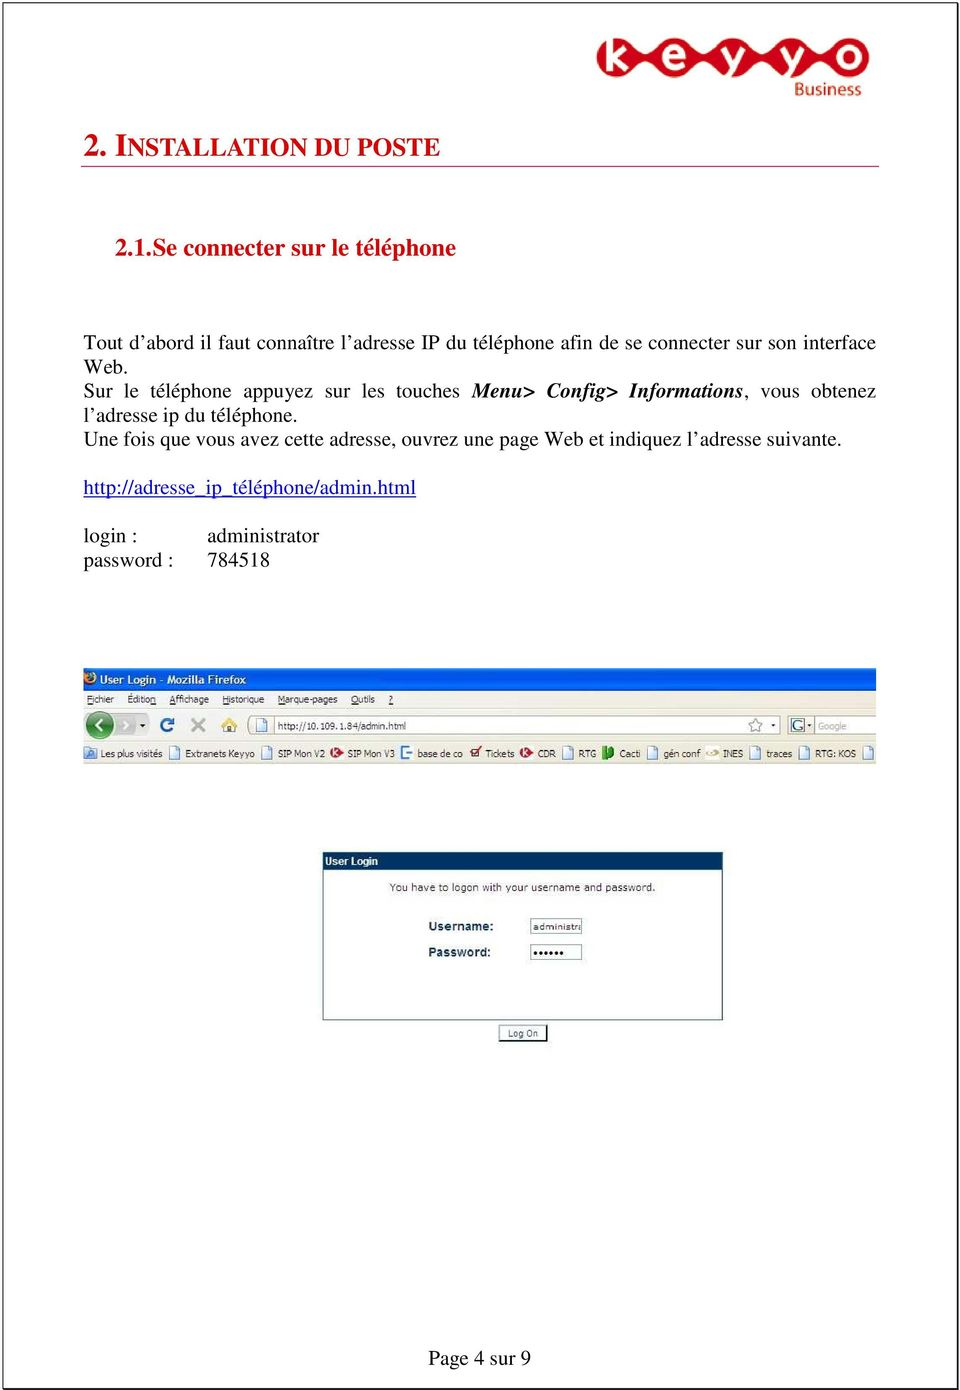 son interface Web.